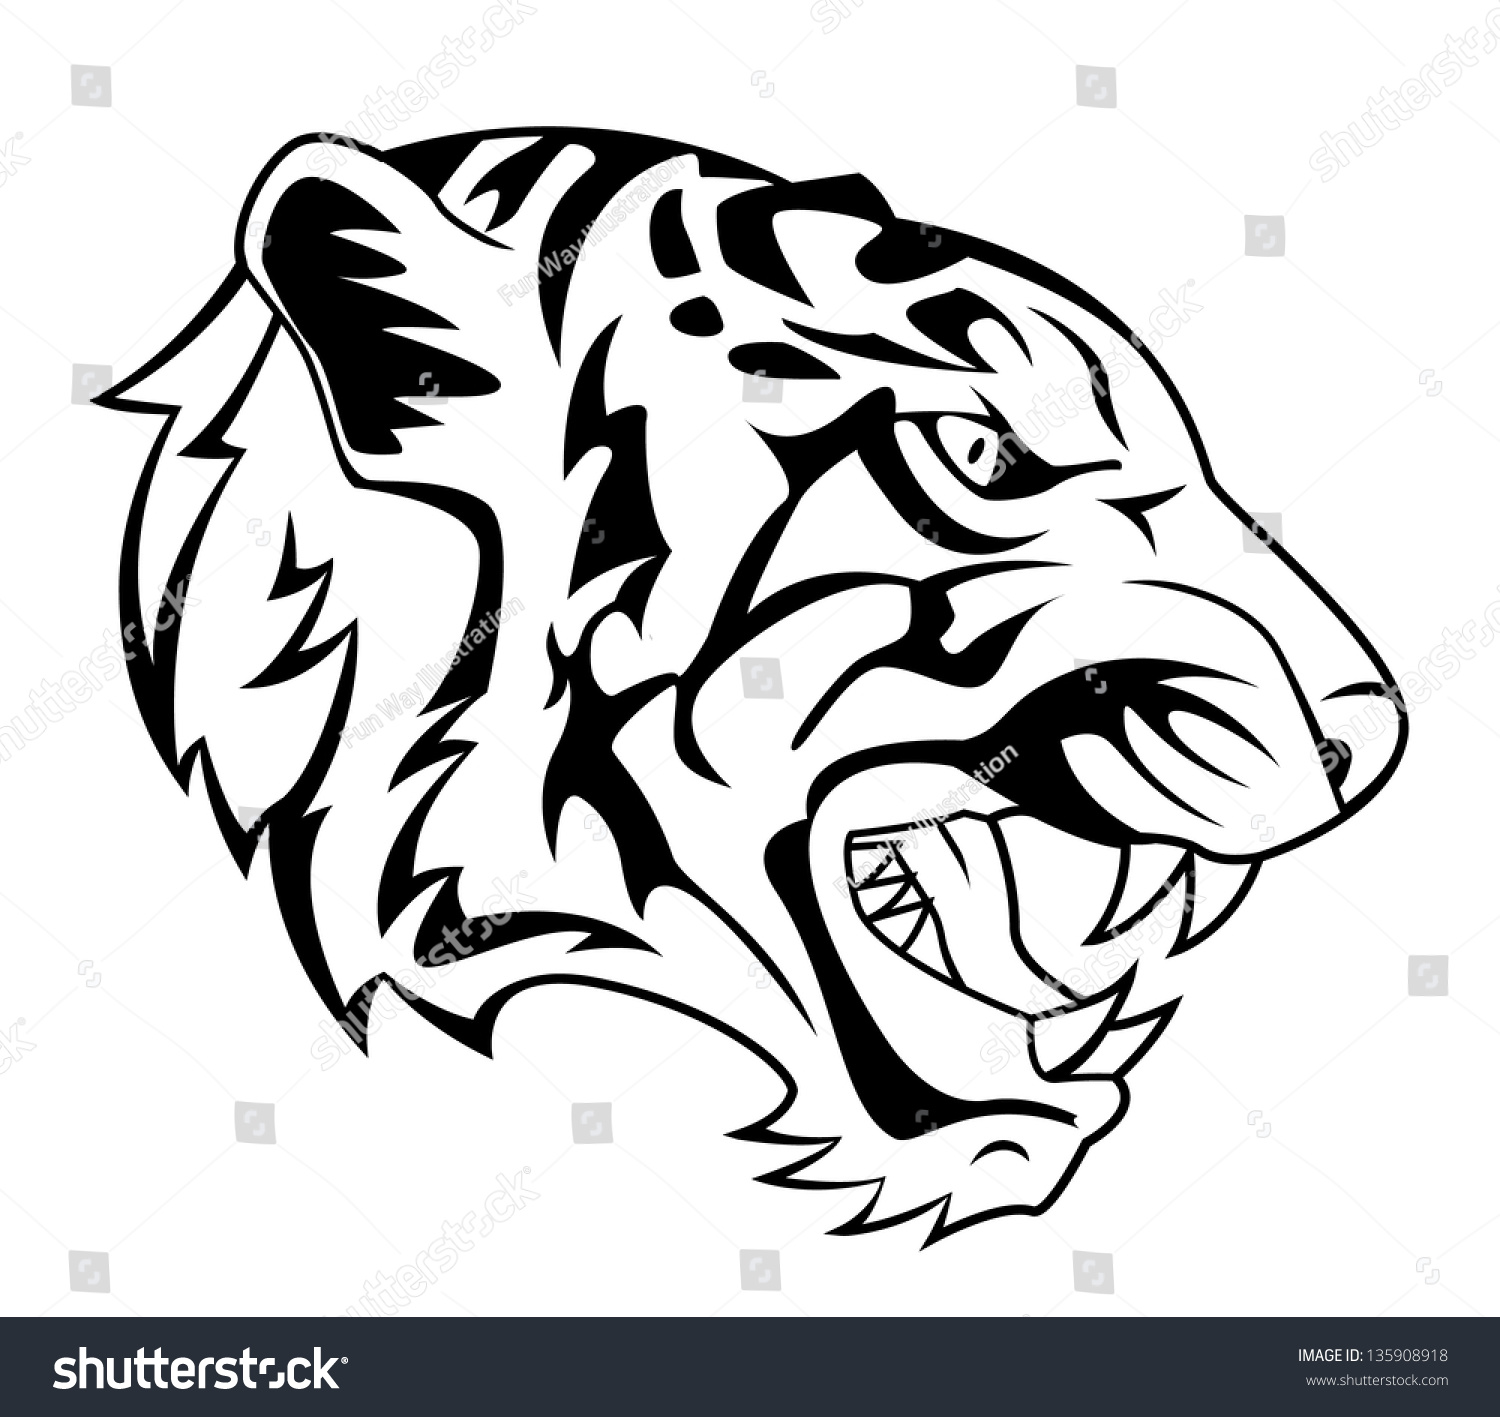 Tiger roar vector - photo#1